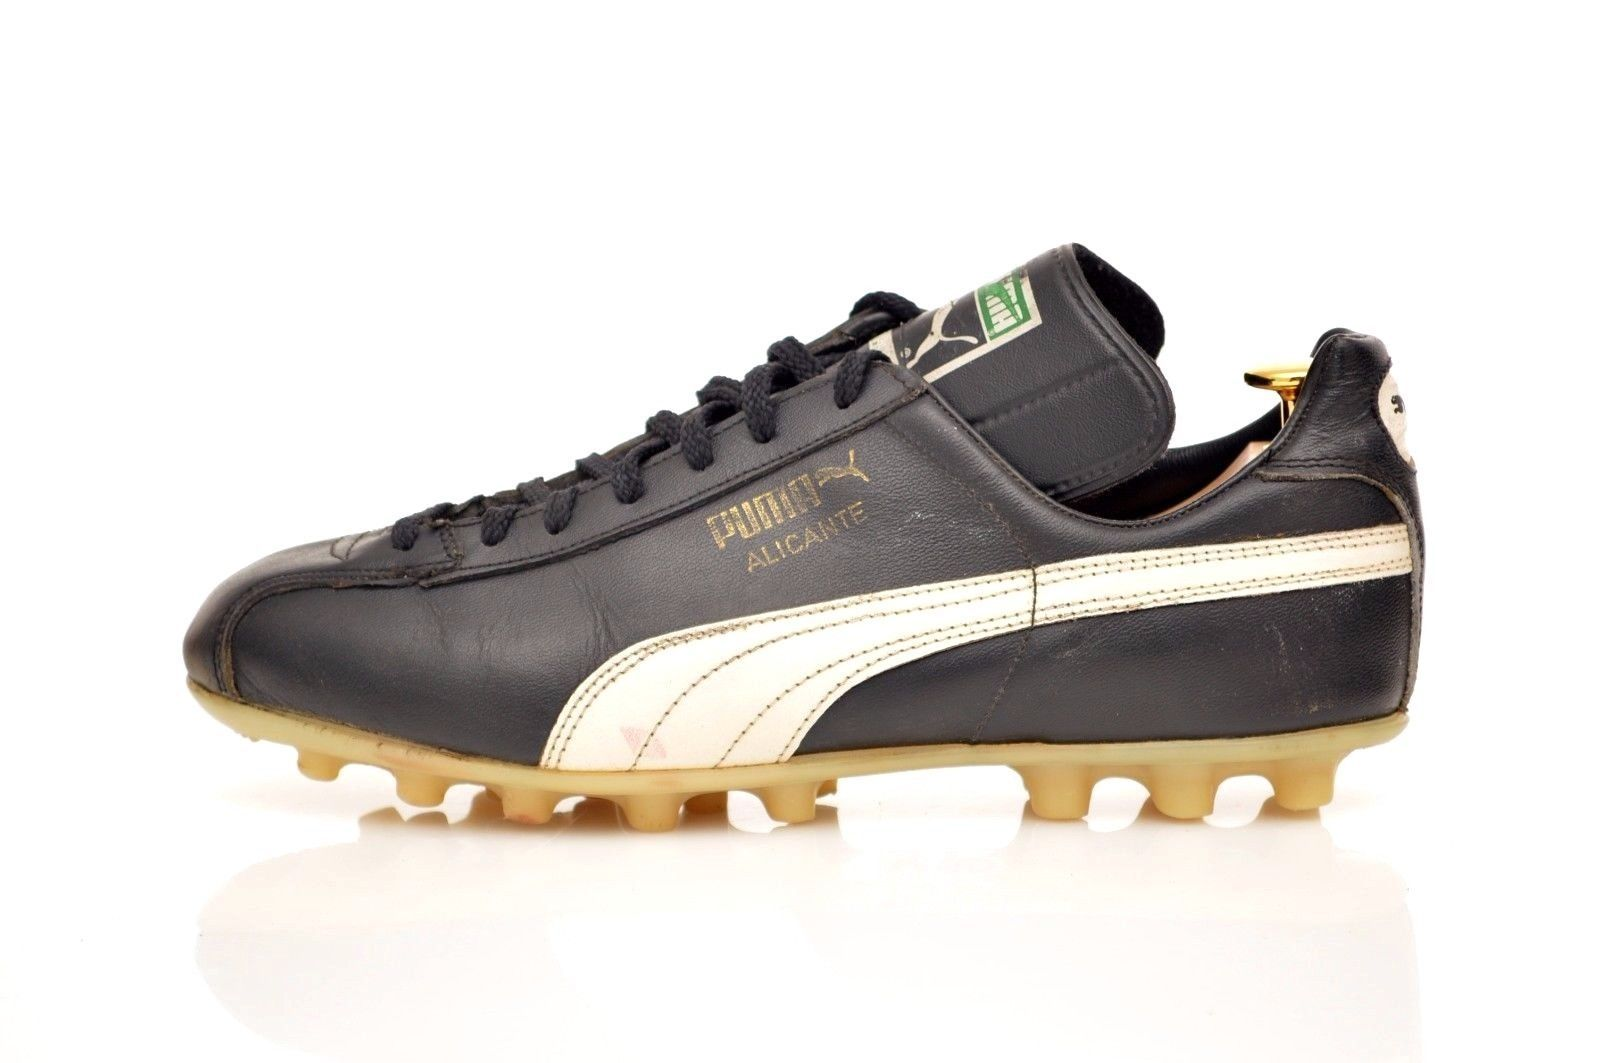 ec0ca544d vintage PUMA 'Alicante' Football Boots size UK 8 rare OG 70s black leather  | eBay